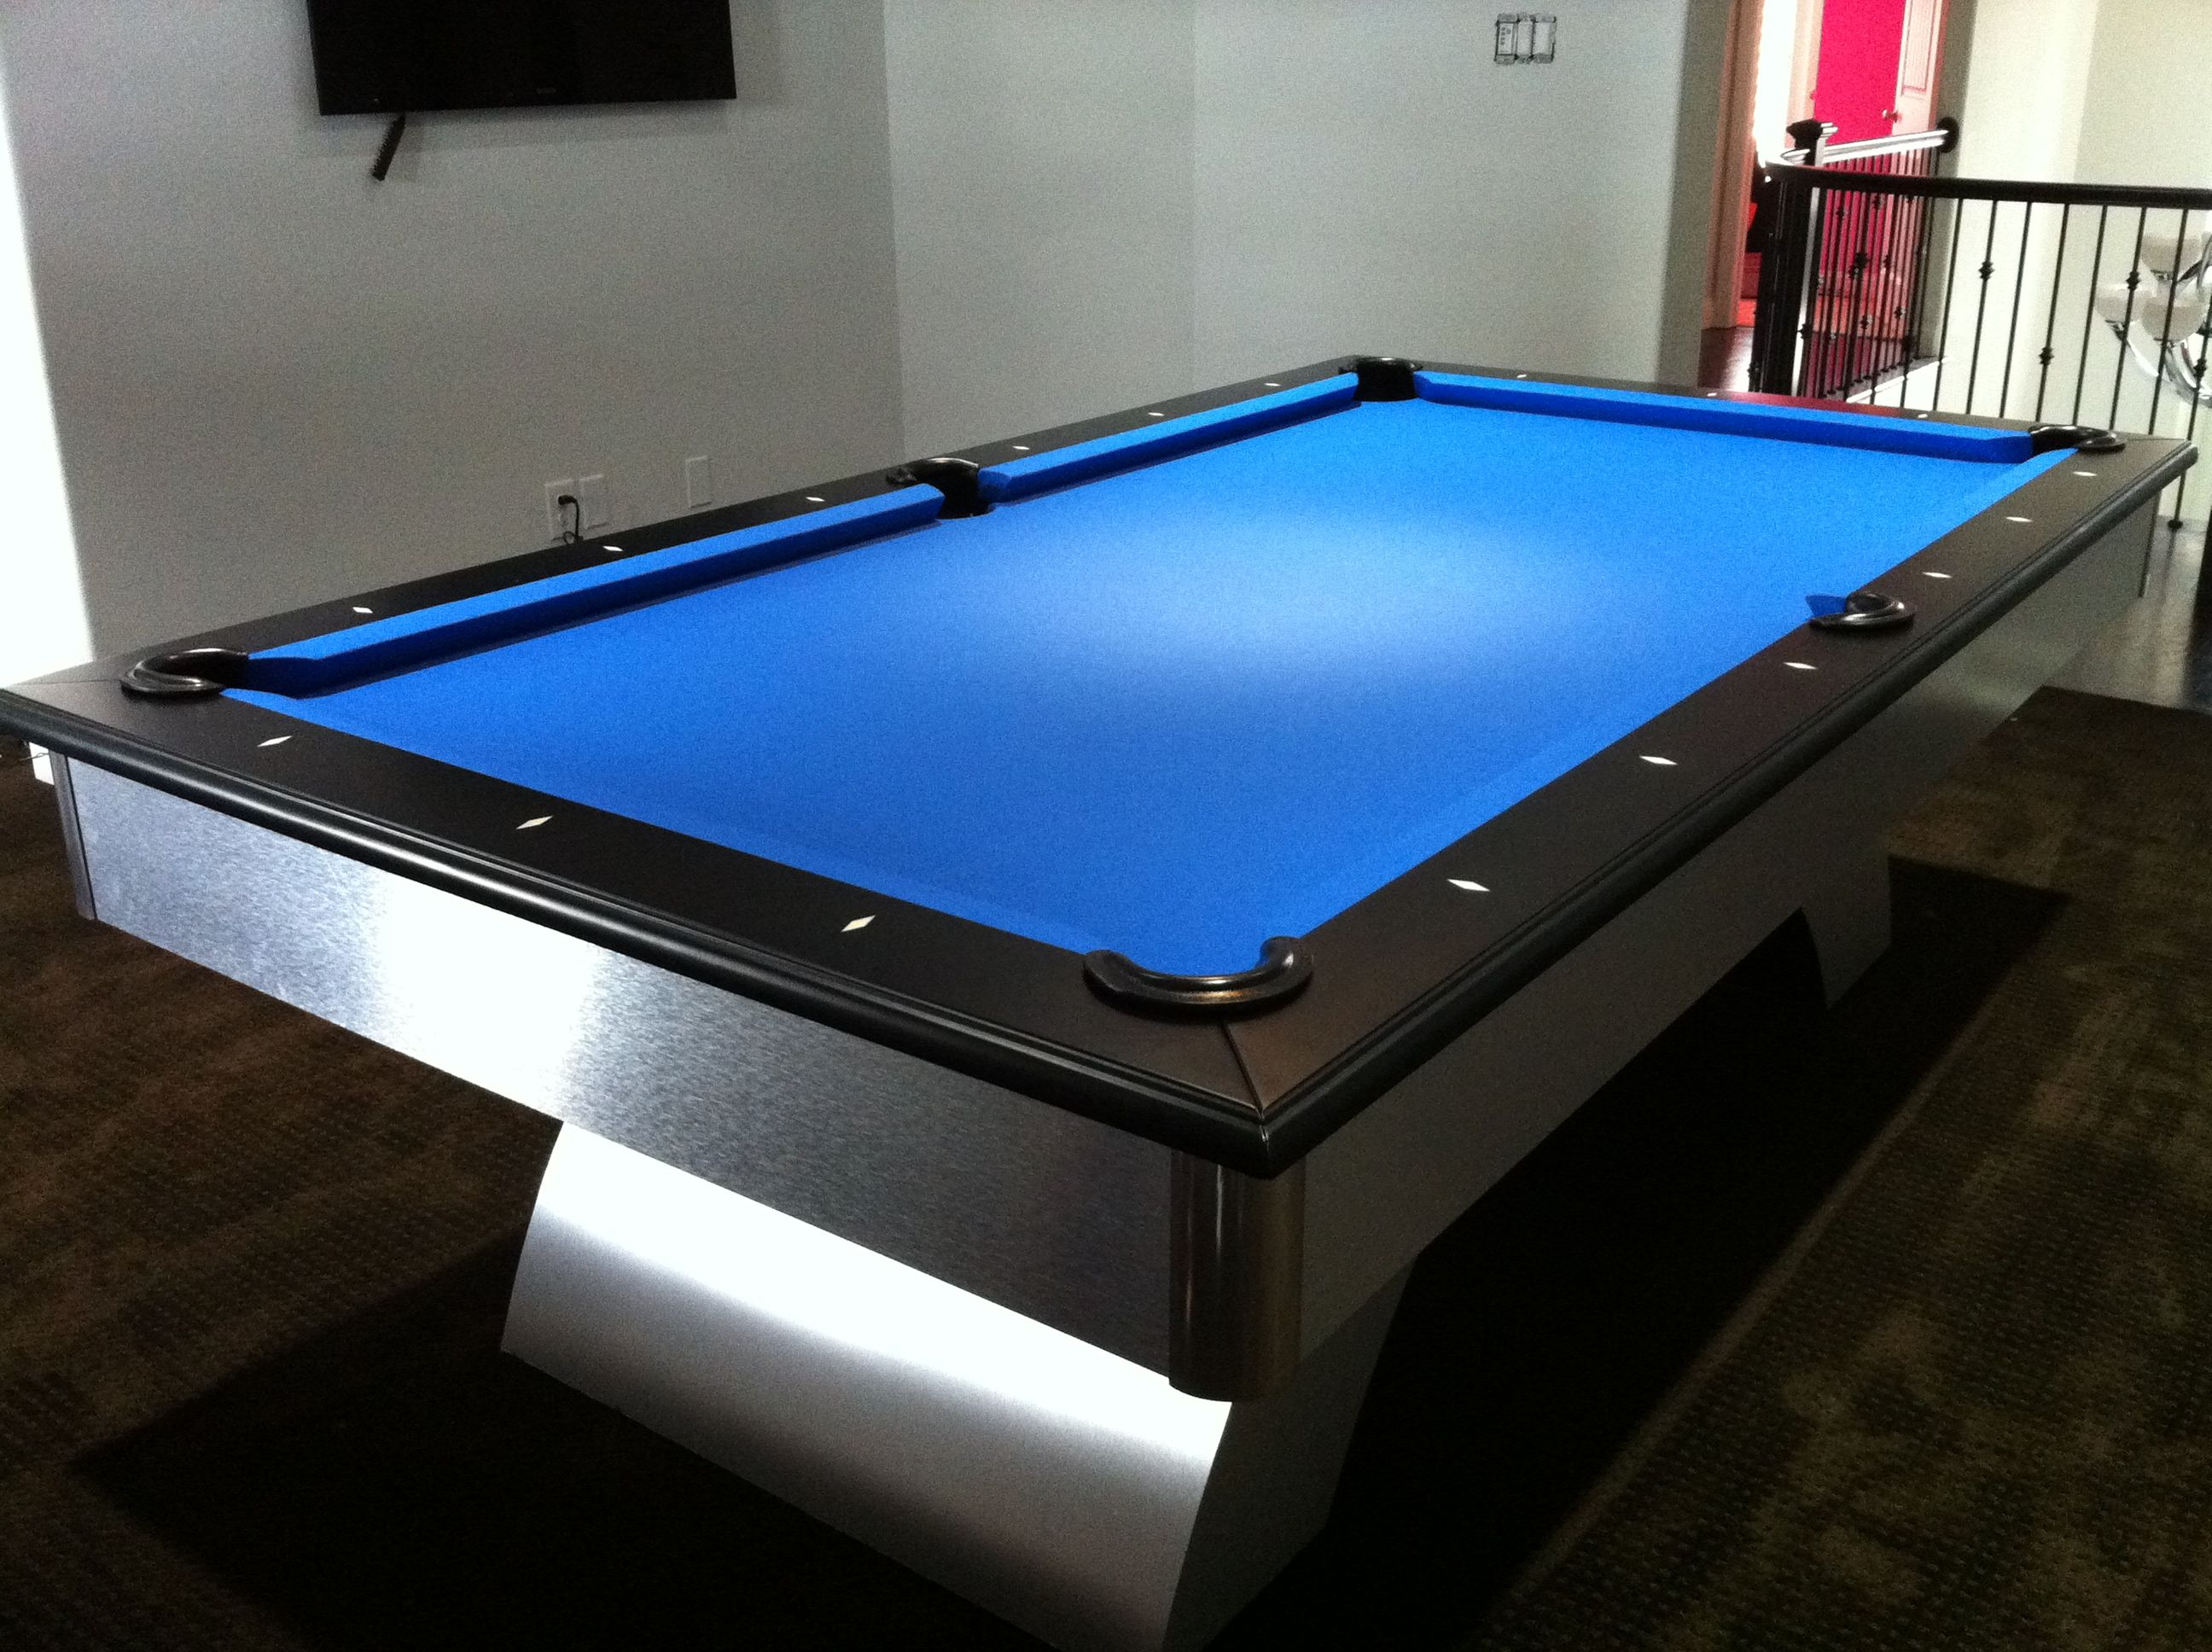 Pool Tables 1 Inch Slate Pool Tables For Sale Sears Has Pool Tables To Enjoy Time With Family And Friends Ping Pong With Images Black Pool Table Pool Table Diy Pool Table